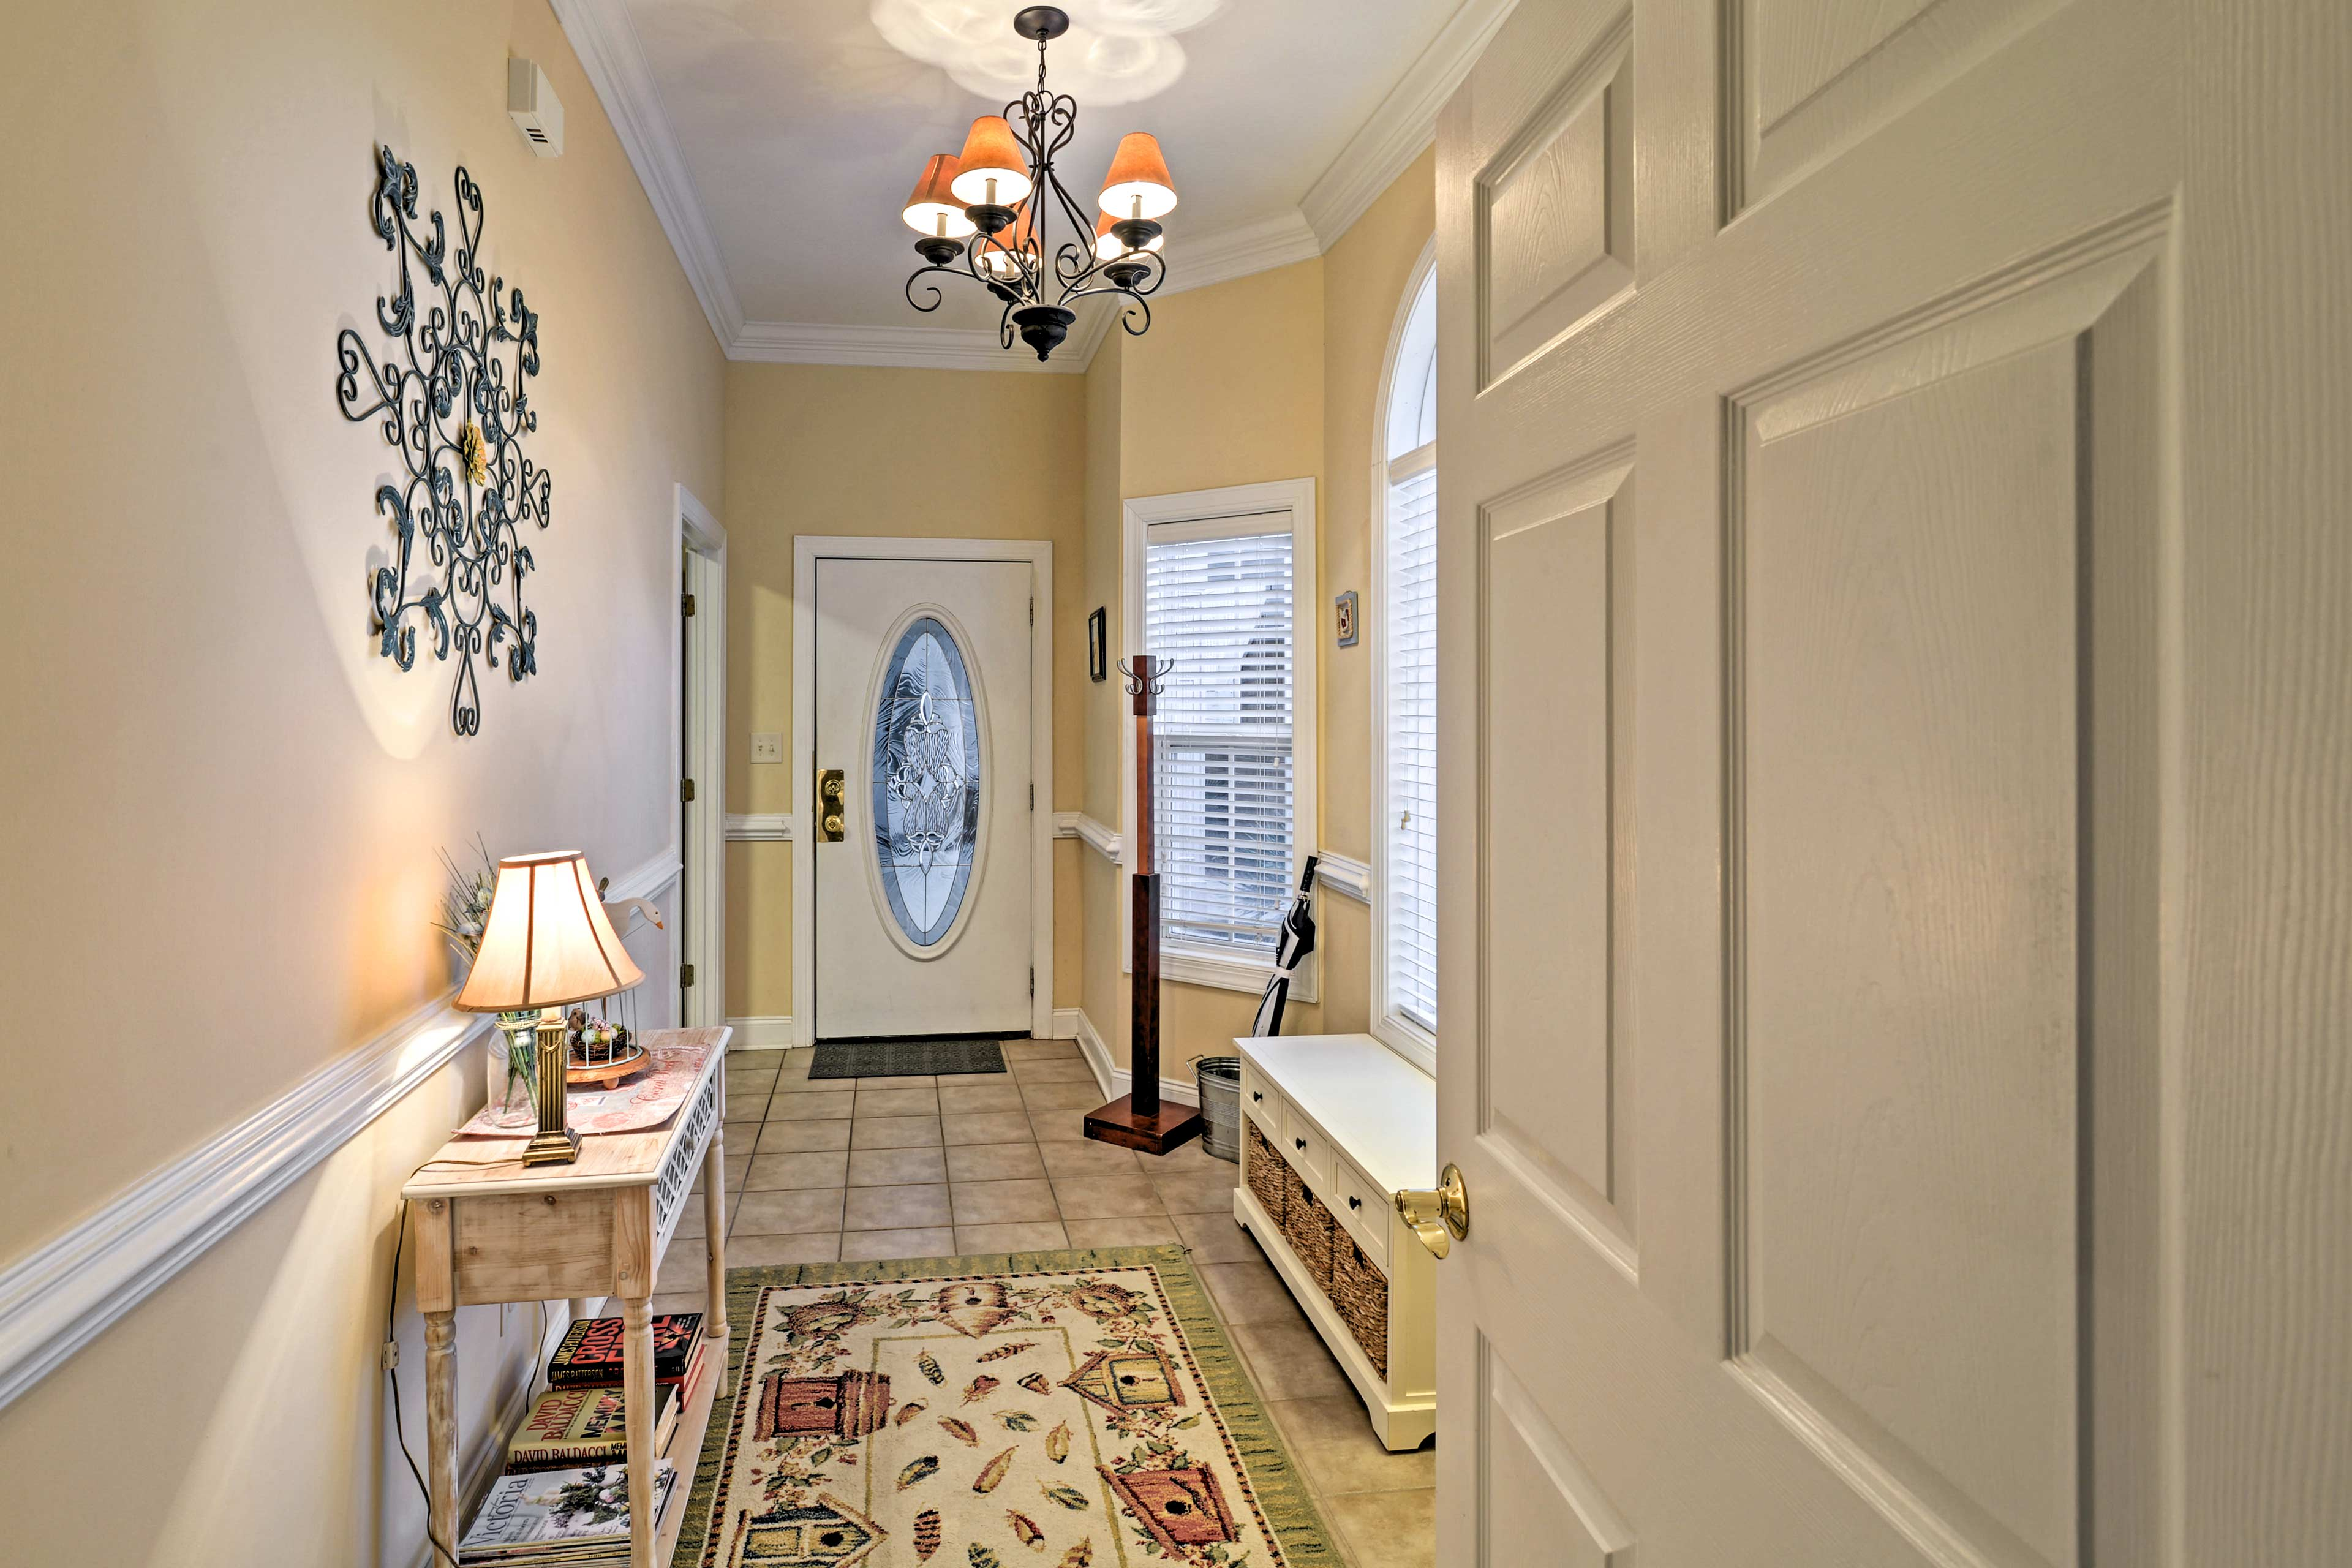 Step into the beautiful foyer to begin your vacation!